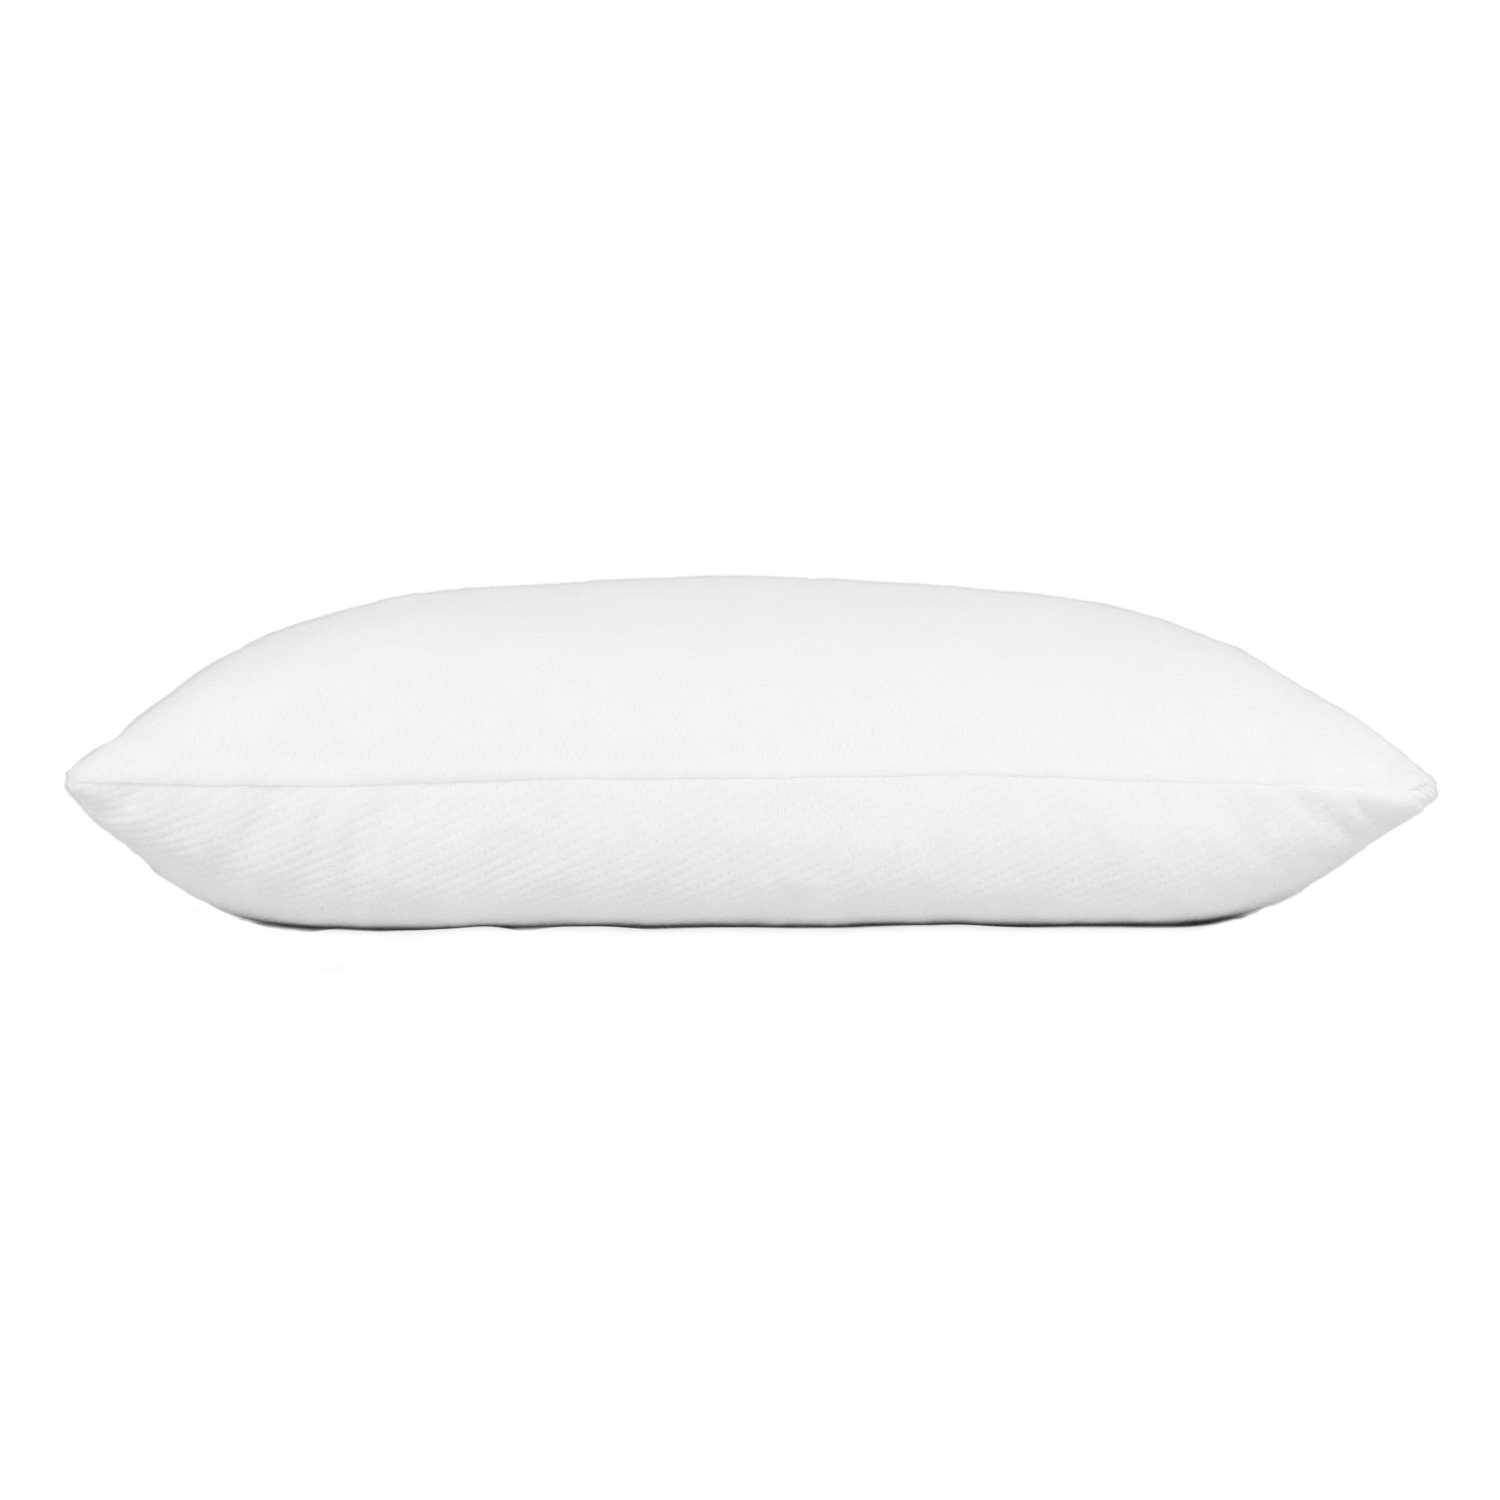 shredded memory foam pillow front